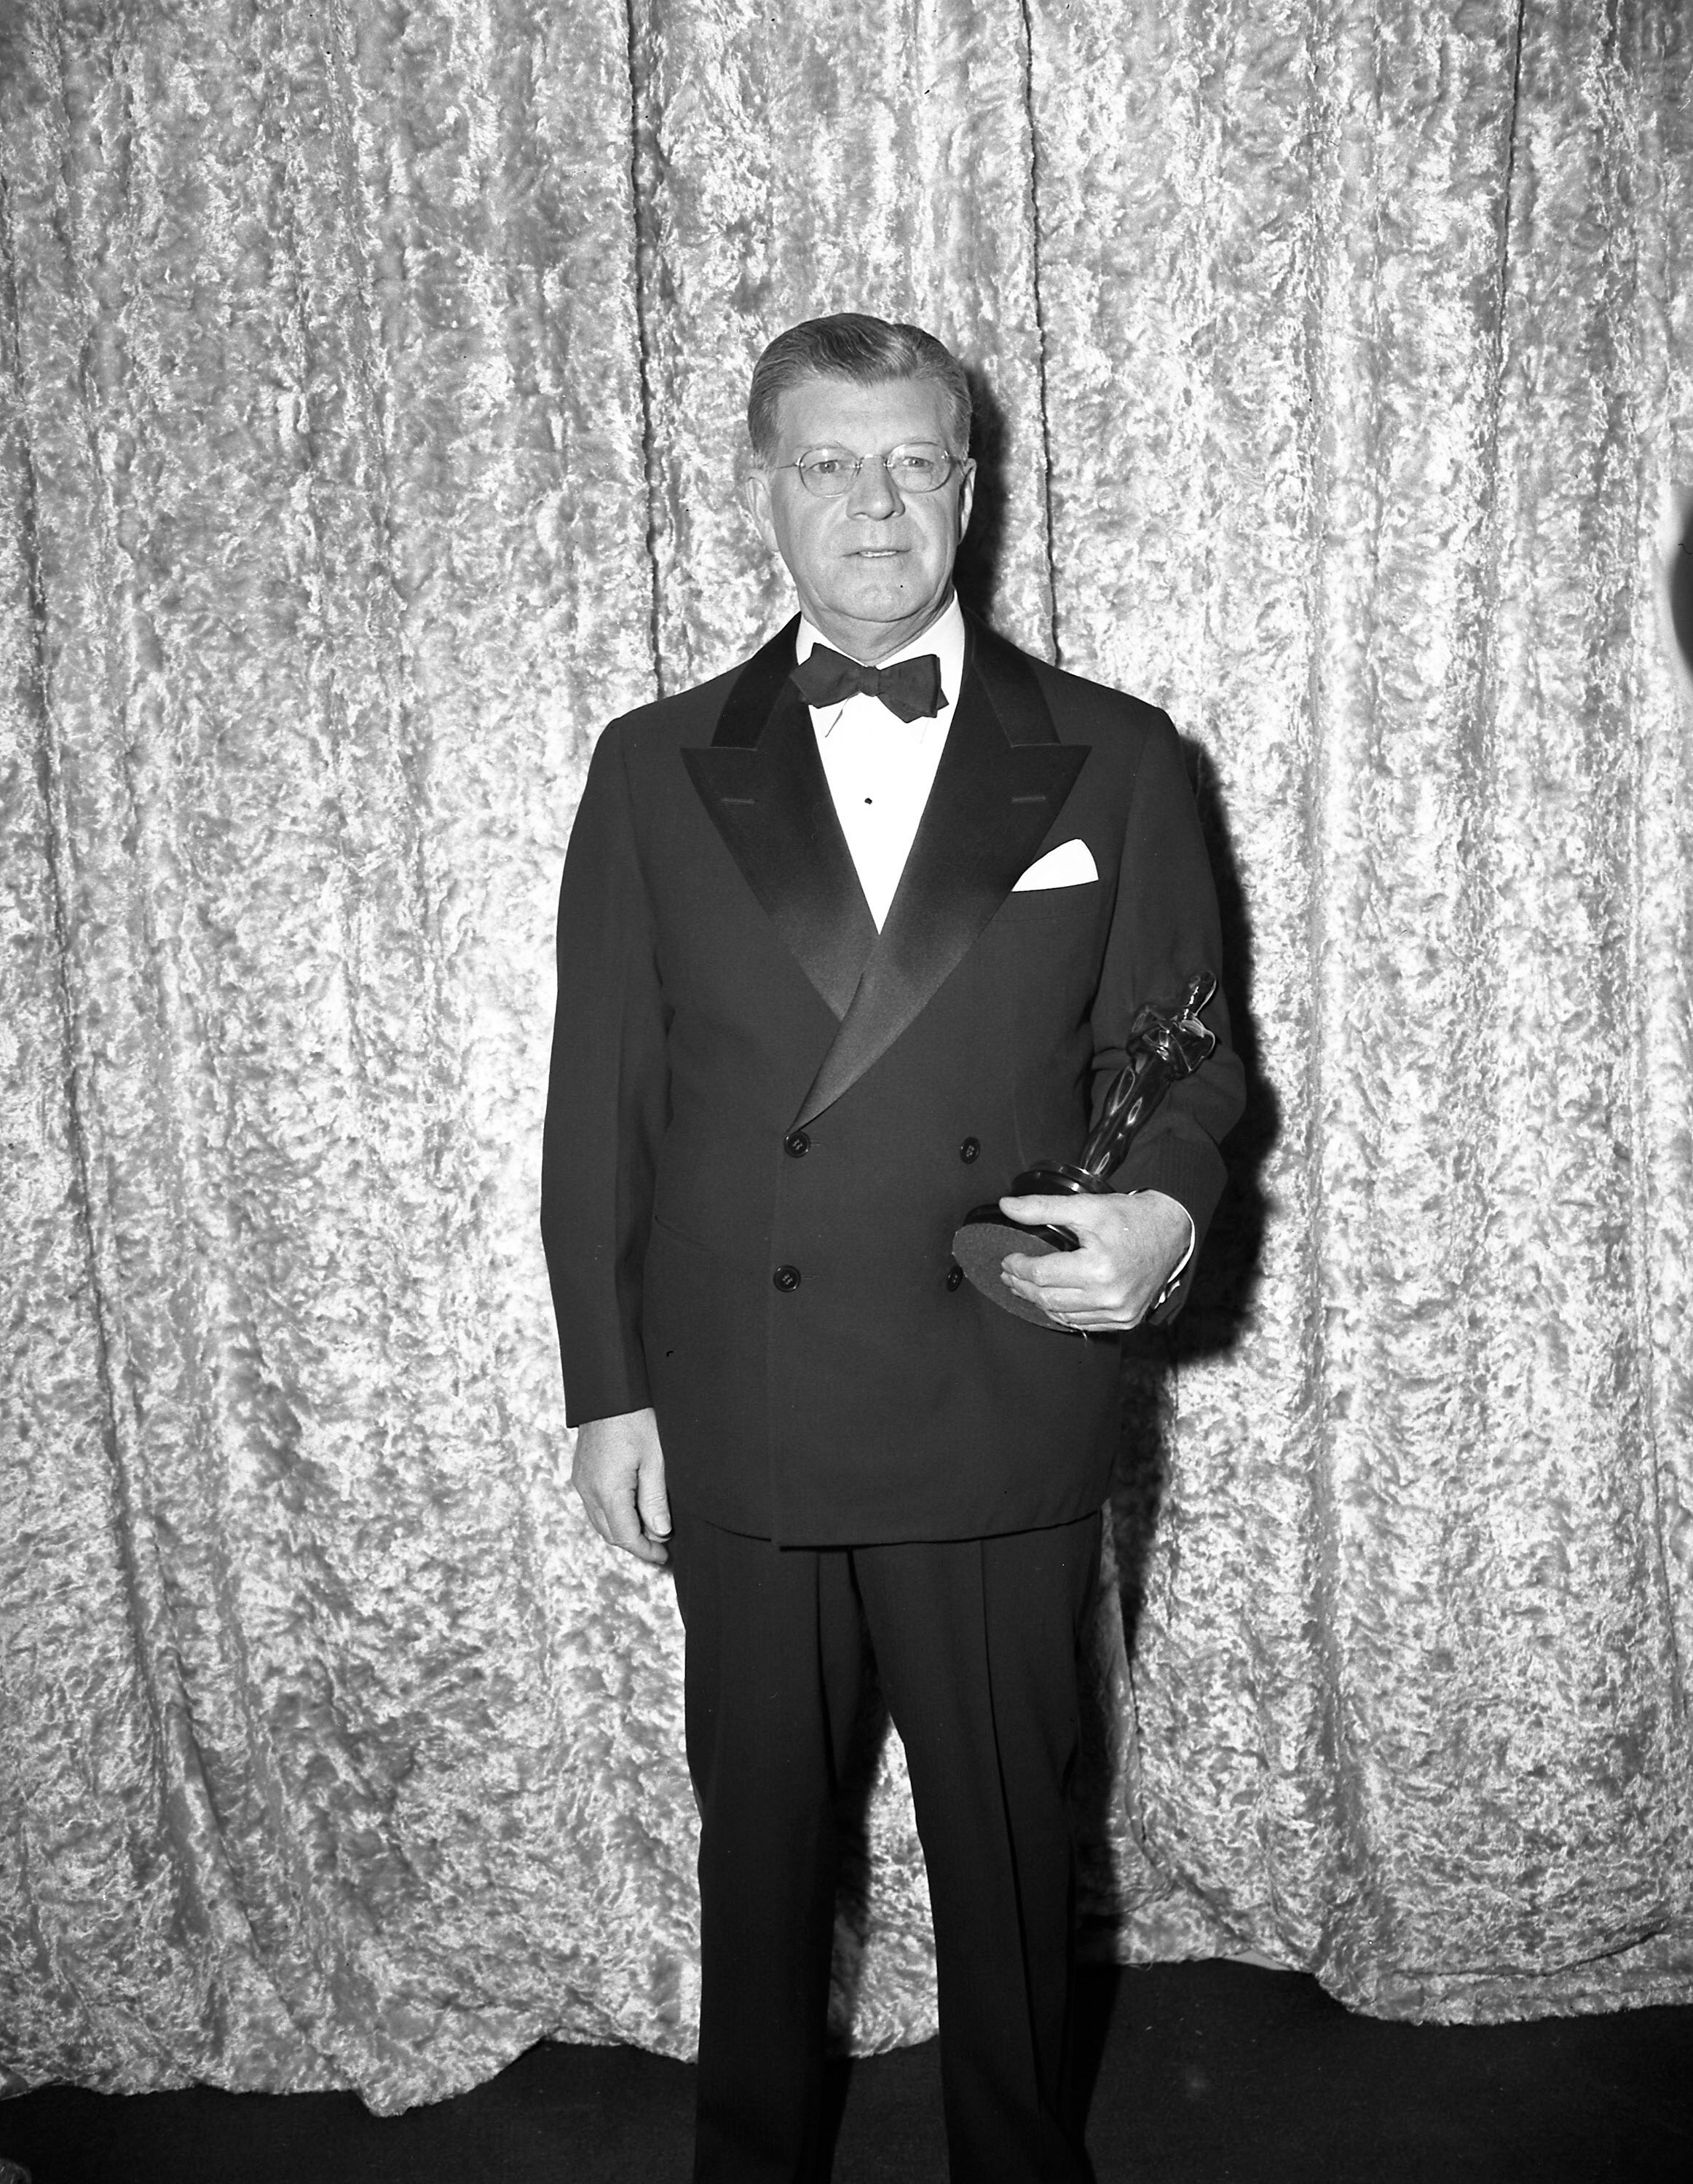 1946 | Oscars.org | Academy of Motion Picture Arts and Sciences